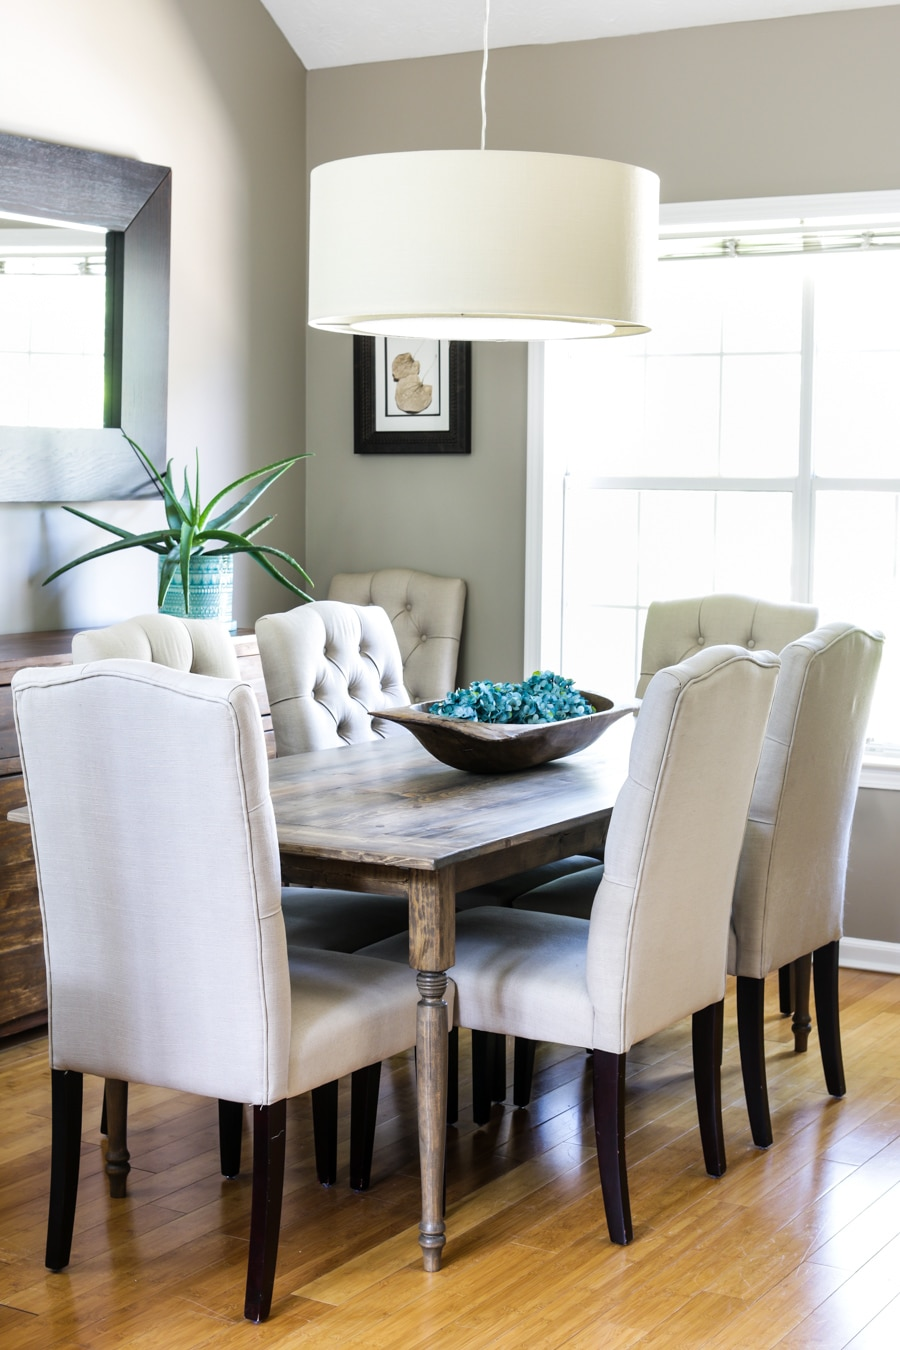 How To Build A DIY Farmhouse Table In 5 Easy Steps Easiest Dining